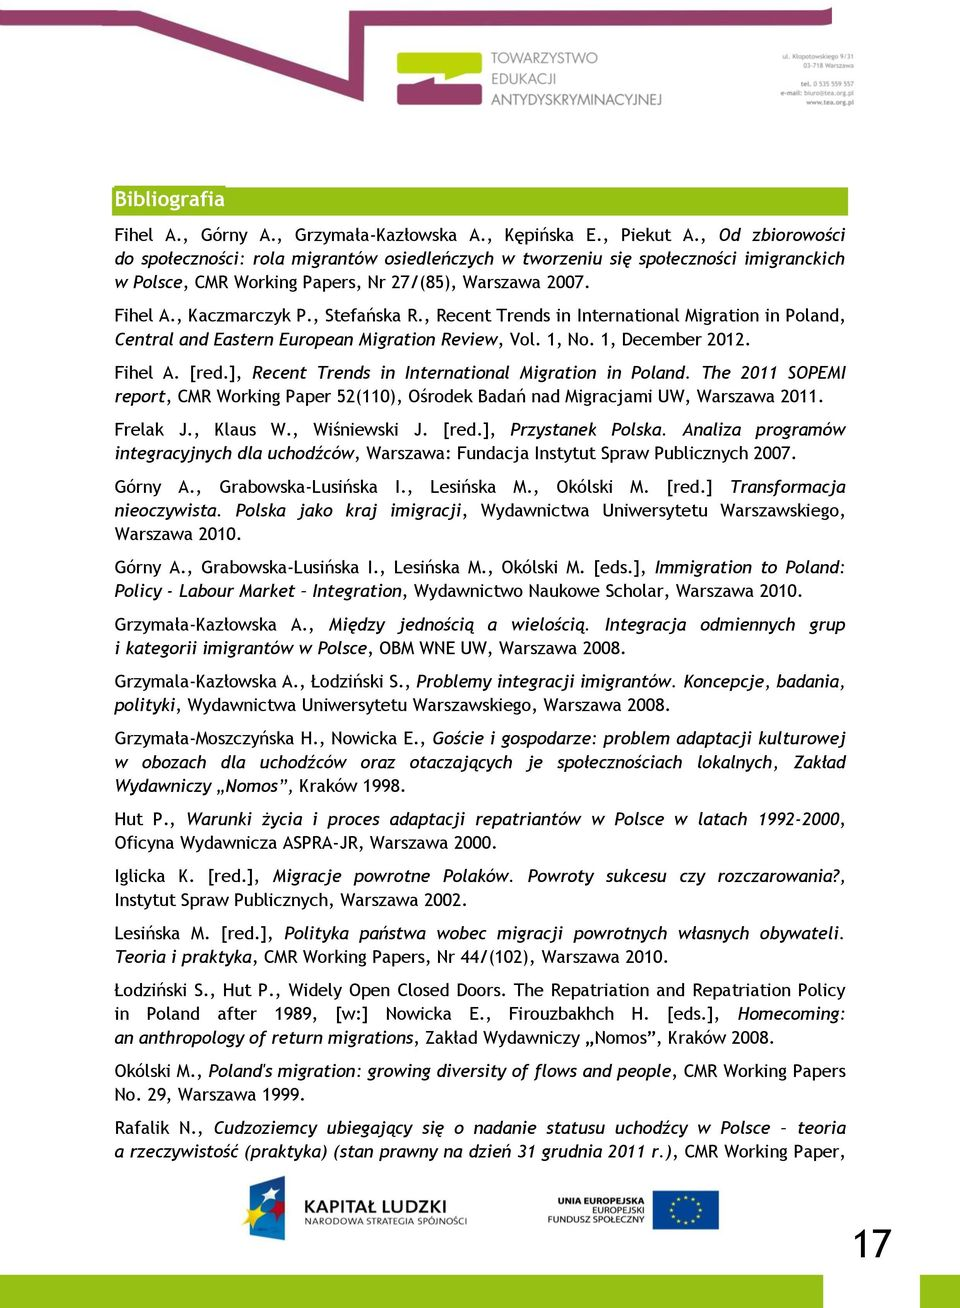 , Recent Trends in International Migration in Poland, Central and Eastern European Migration Review, Vol., No., December 202. Fihel A. [red.], Recent Trends in International Migration in Poland.